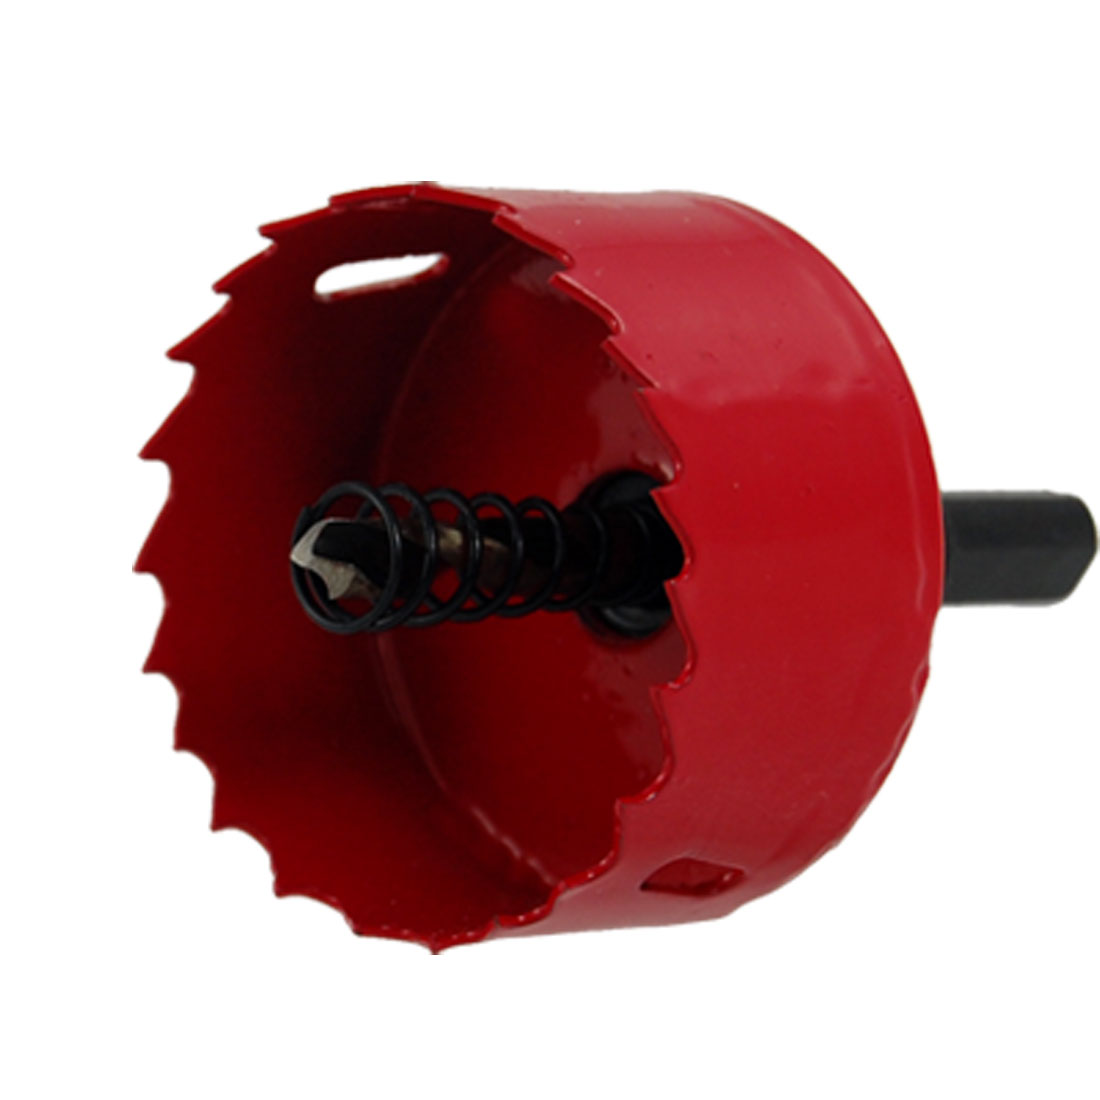 55mm Cutting Diameter Red Bimetal Hole Saw w Twist Drilling Bit